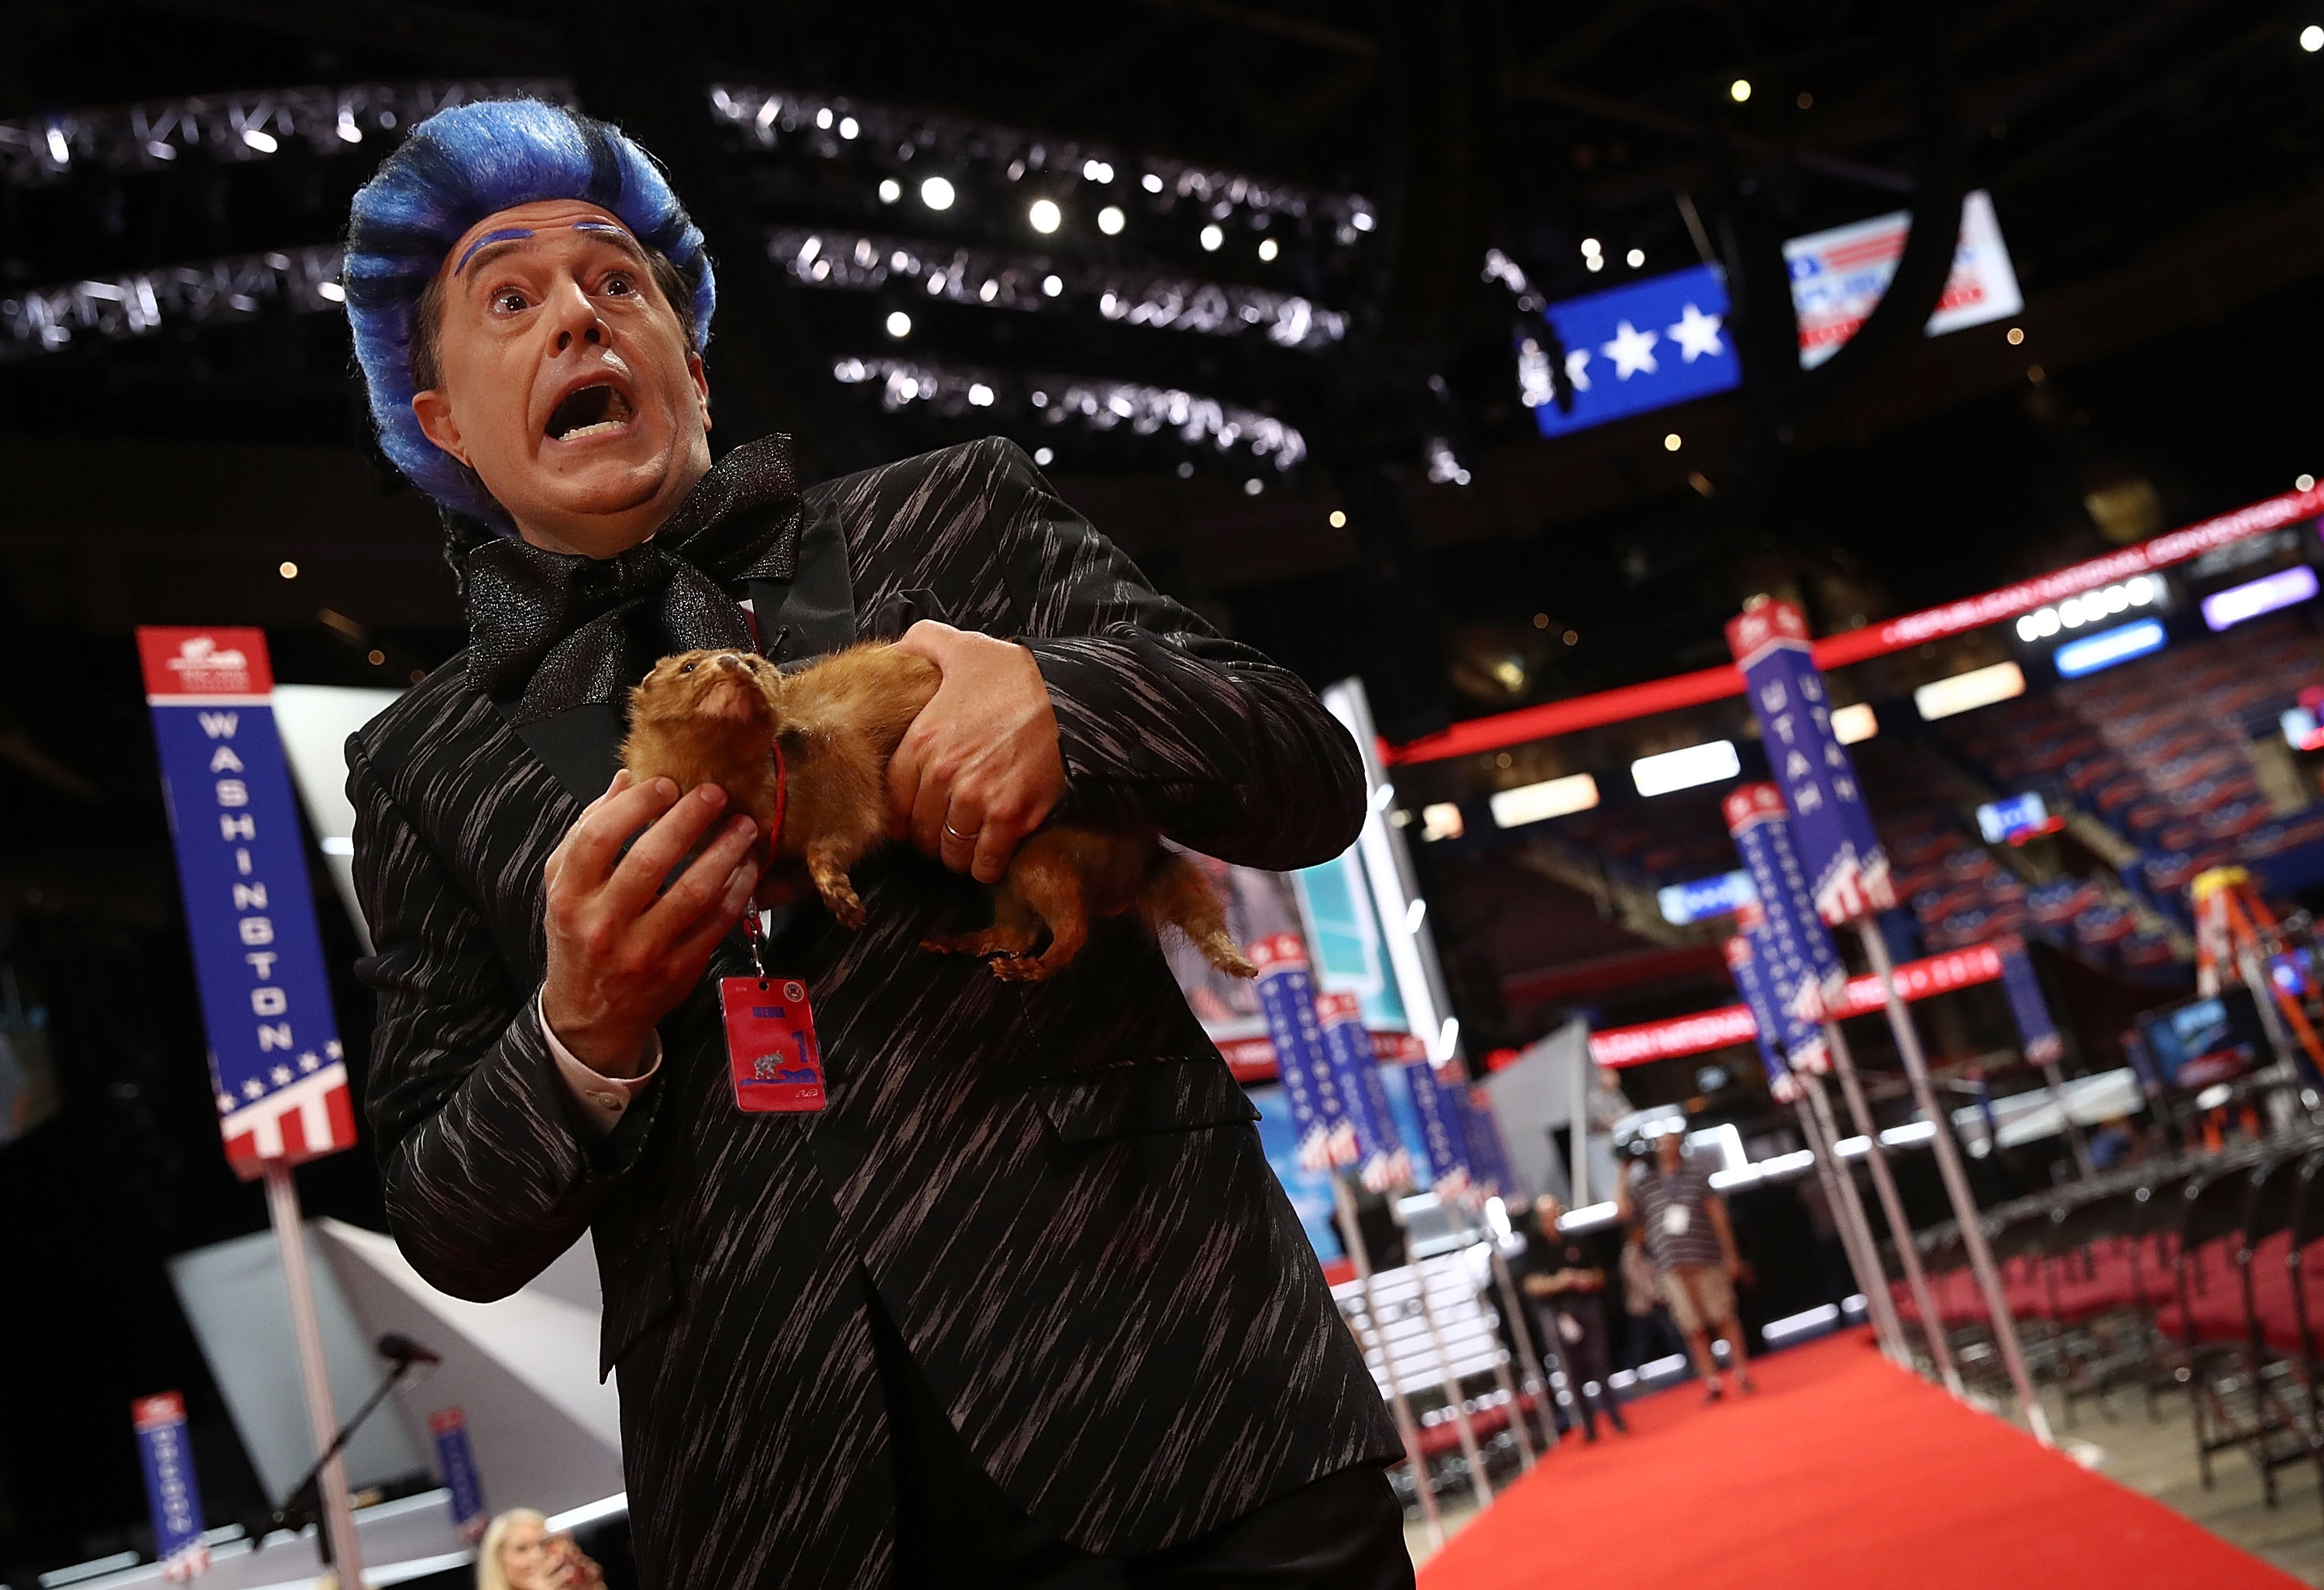 """Comedian Stephen Colbert tapes a segment on the floor of the Republican National Convention for CBS's """"The Late Show with Stephen Colbert"""" at the Quicken Loans Arena in Cleveland, Ohio. (Getty Images)"""